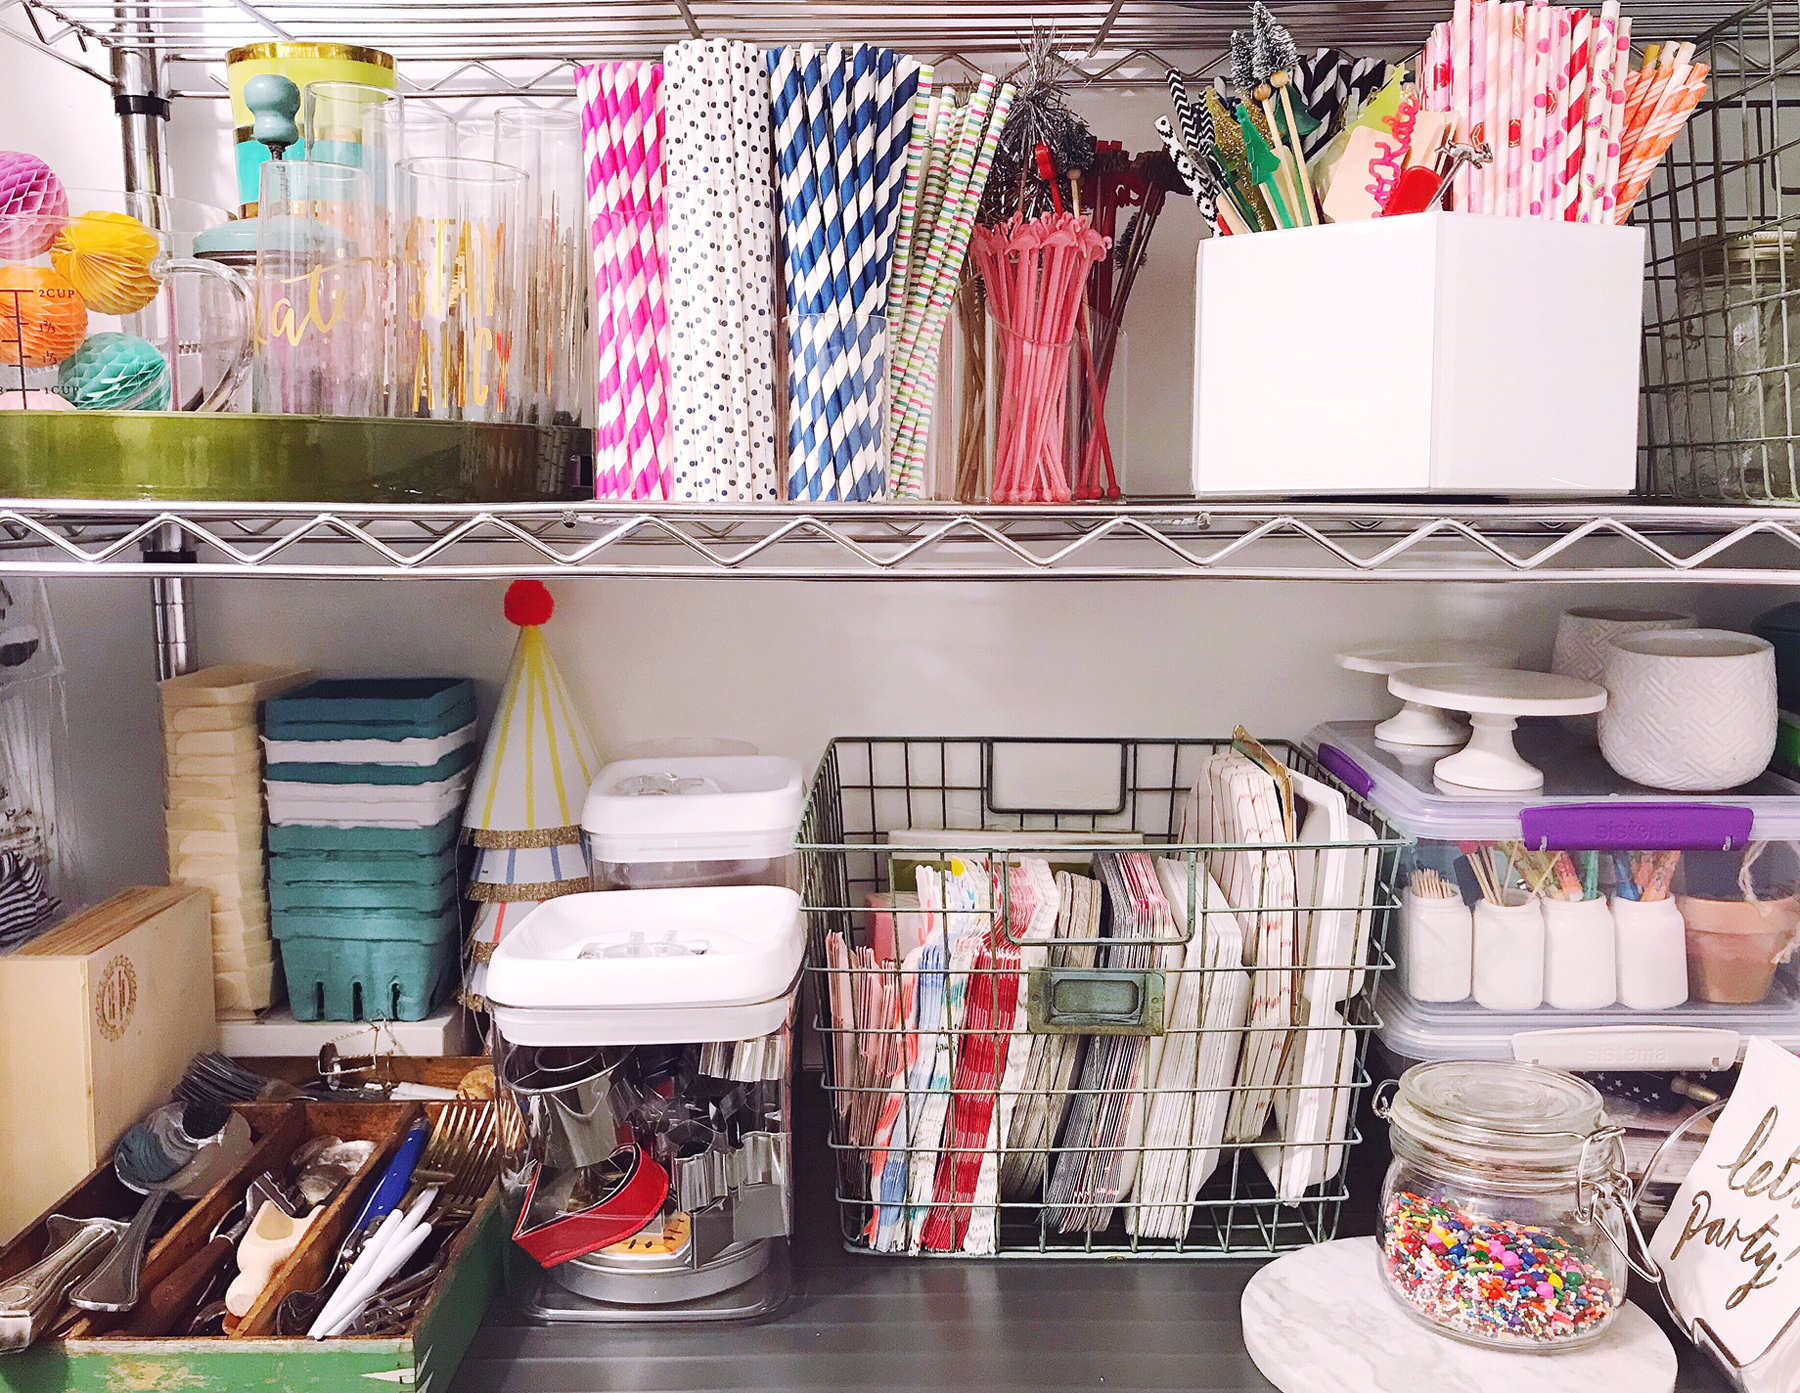 Perfect One Of The Big Selling Points Of Our House When We Still In The  House Hunting Phase, Was A Super Long Walk In Closet That Sits Off The  Kitchen In Our ...